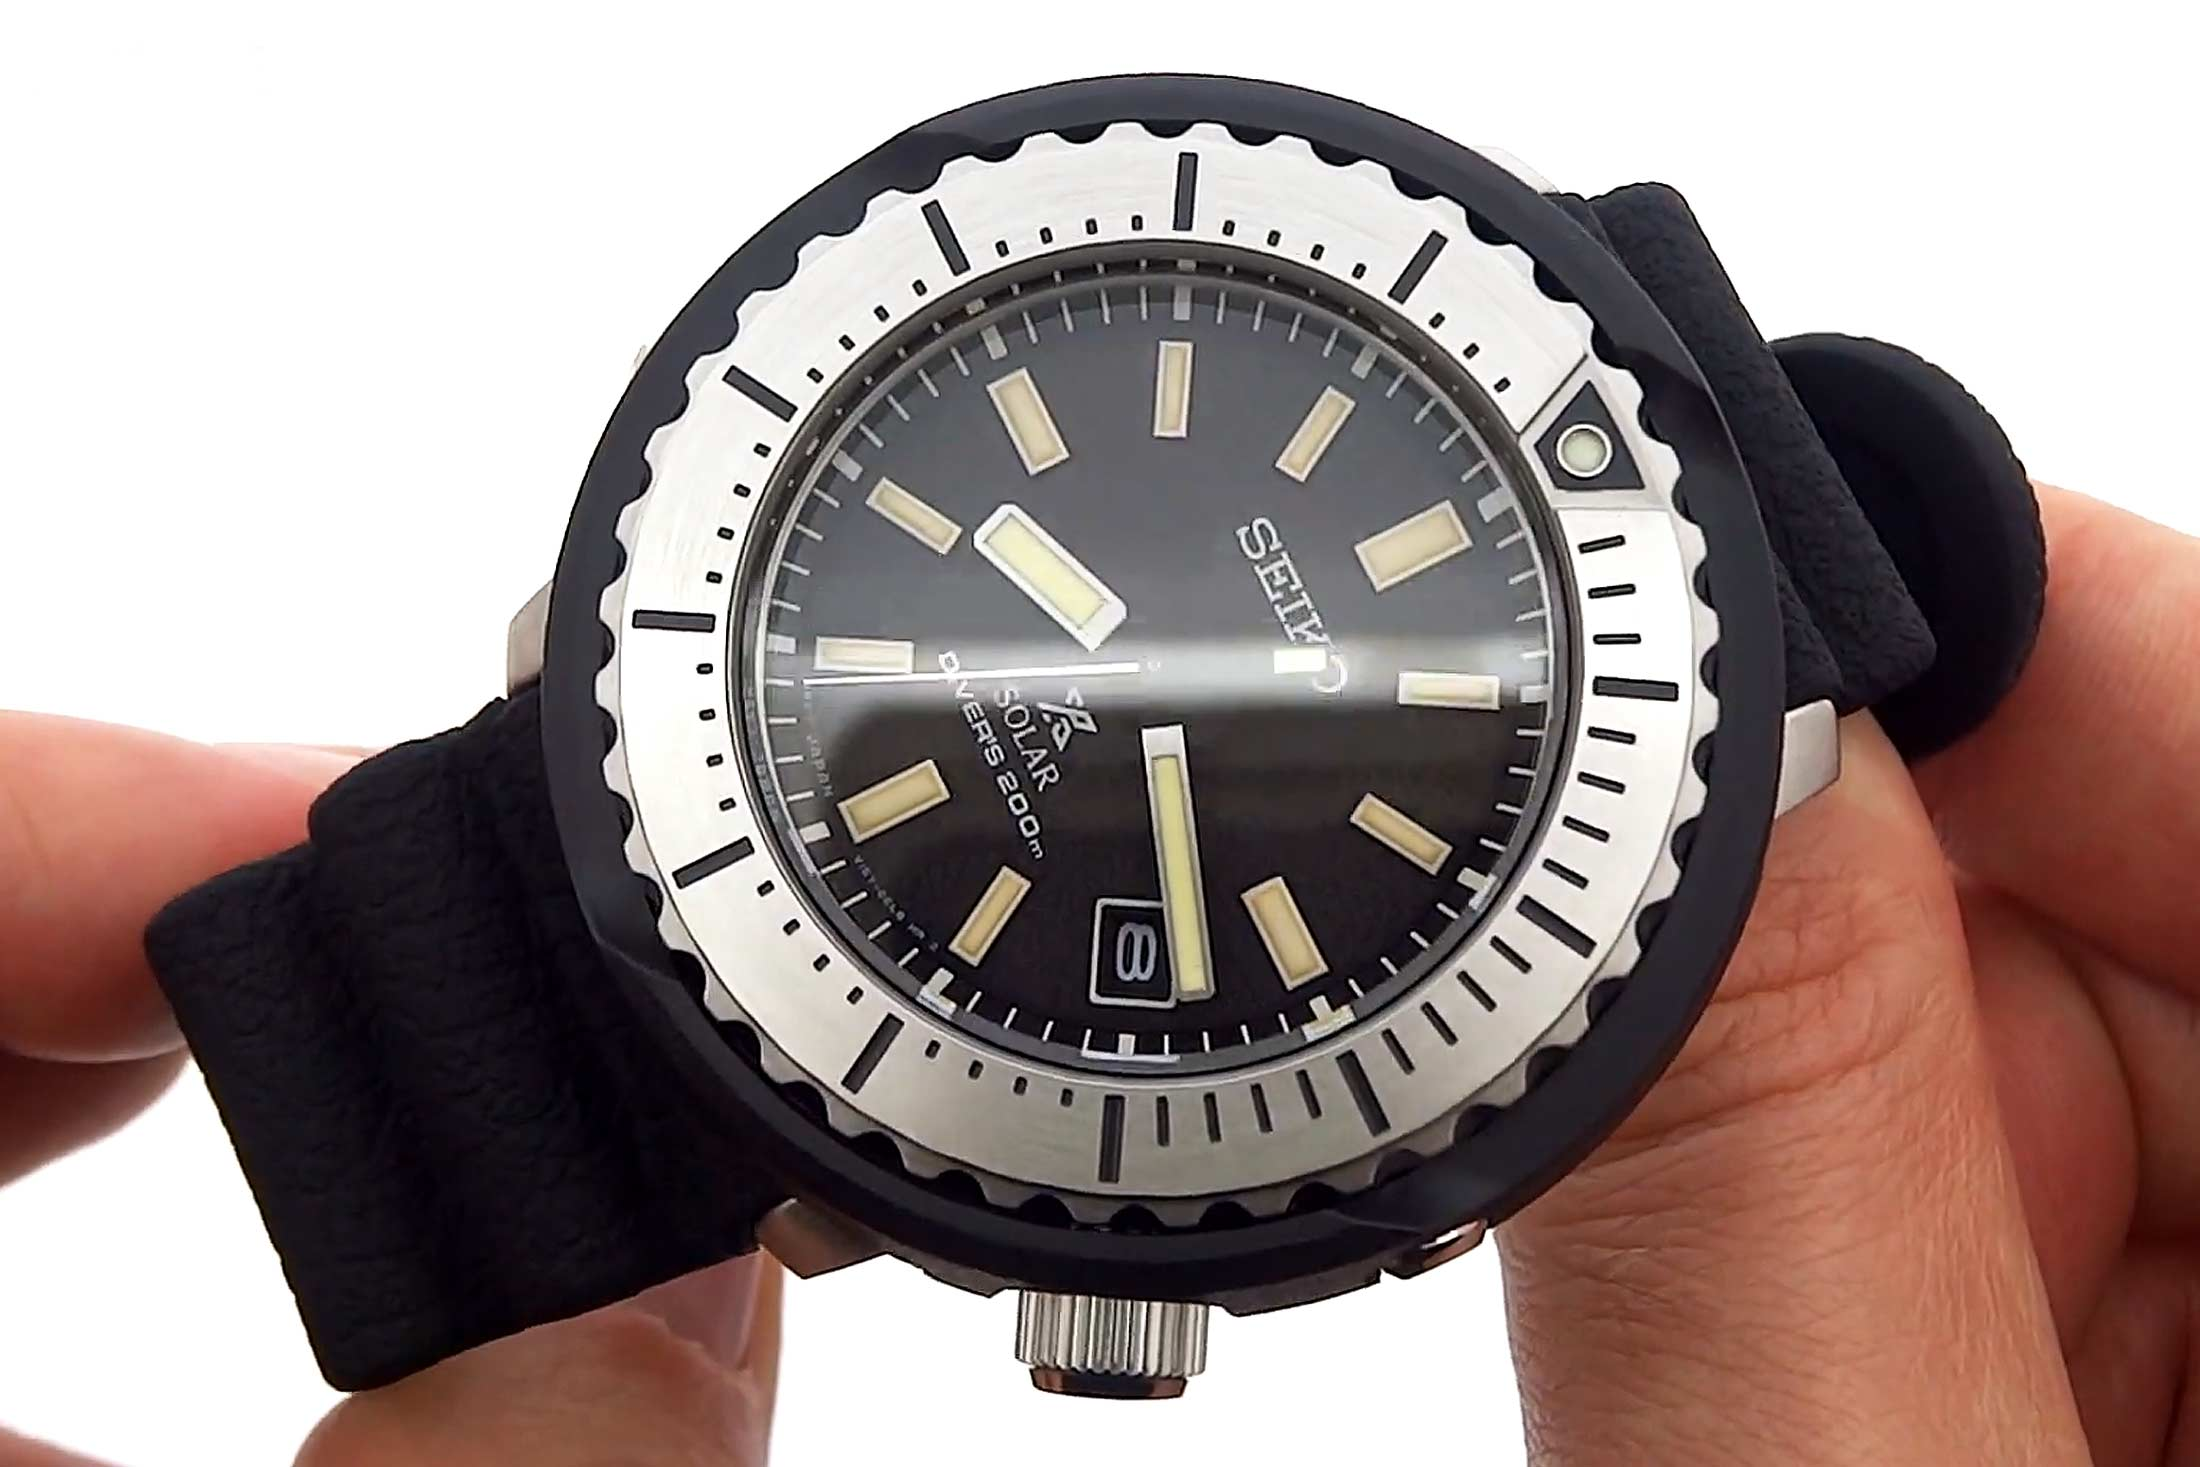 Seiko Street Solar Hands On Video Review